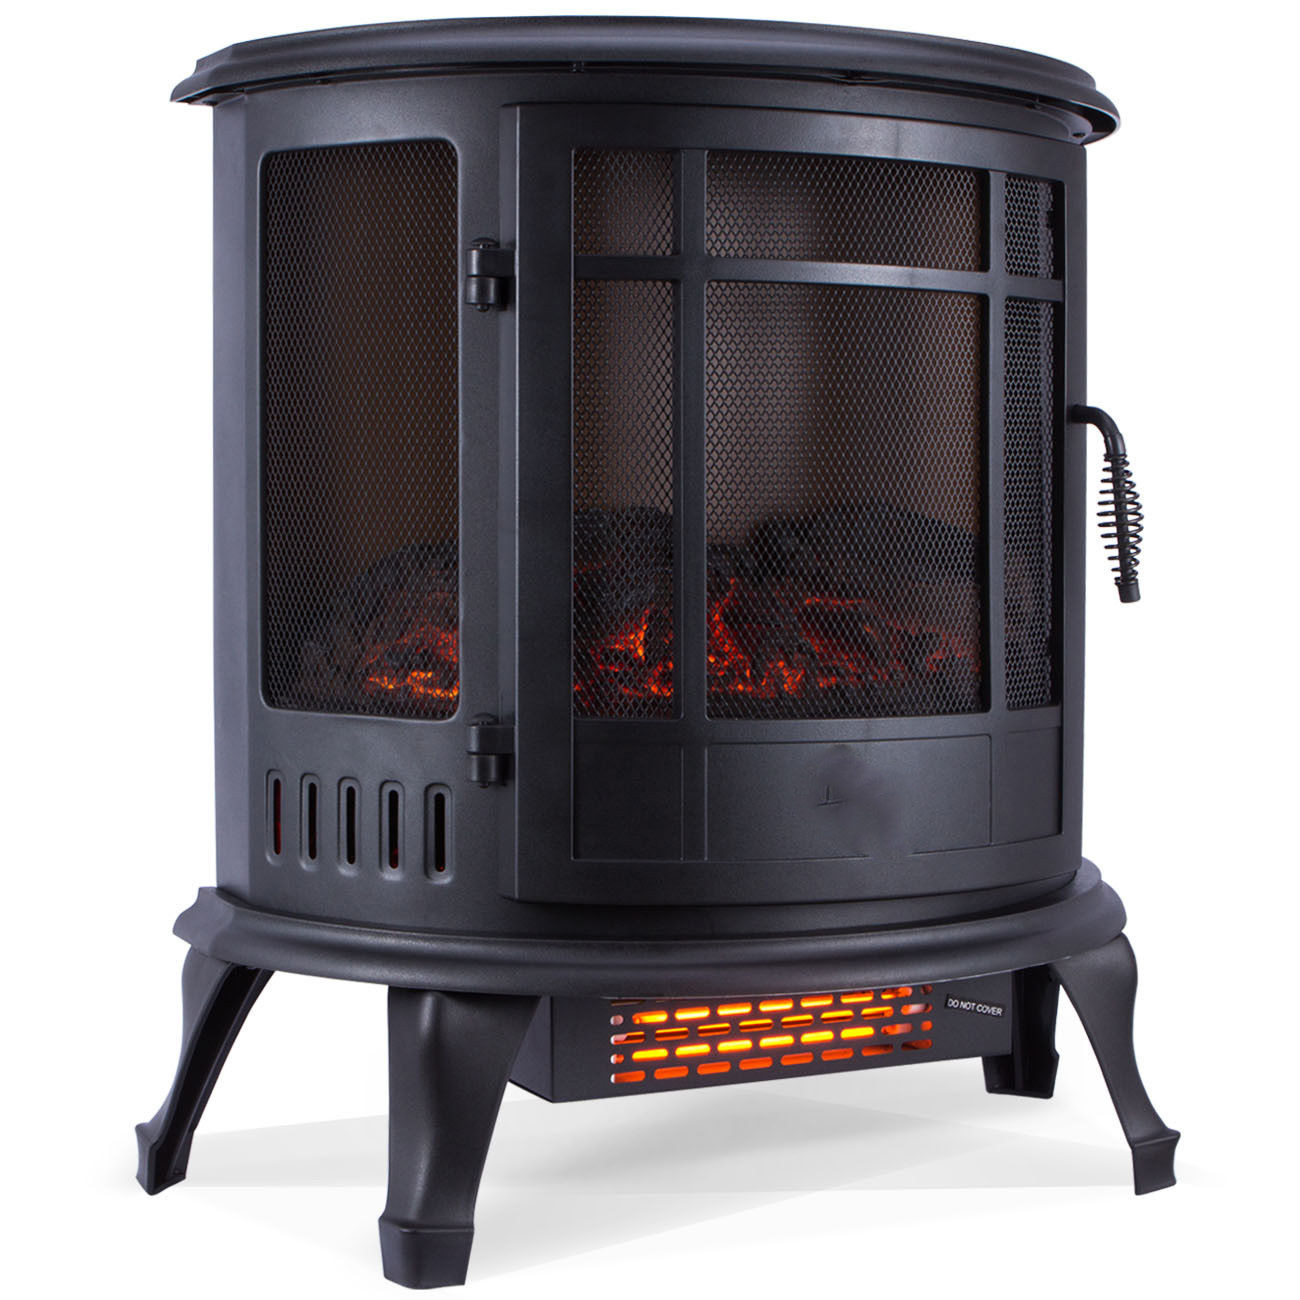 Walmart Black Electric Fireplace Ghp 1400w 700w Black Infrared Front Vent Standing Porable Electric Fireplace Heater